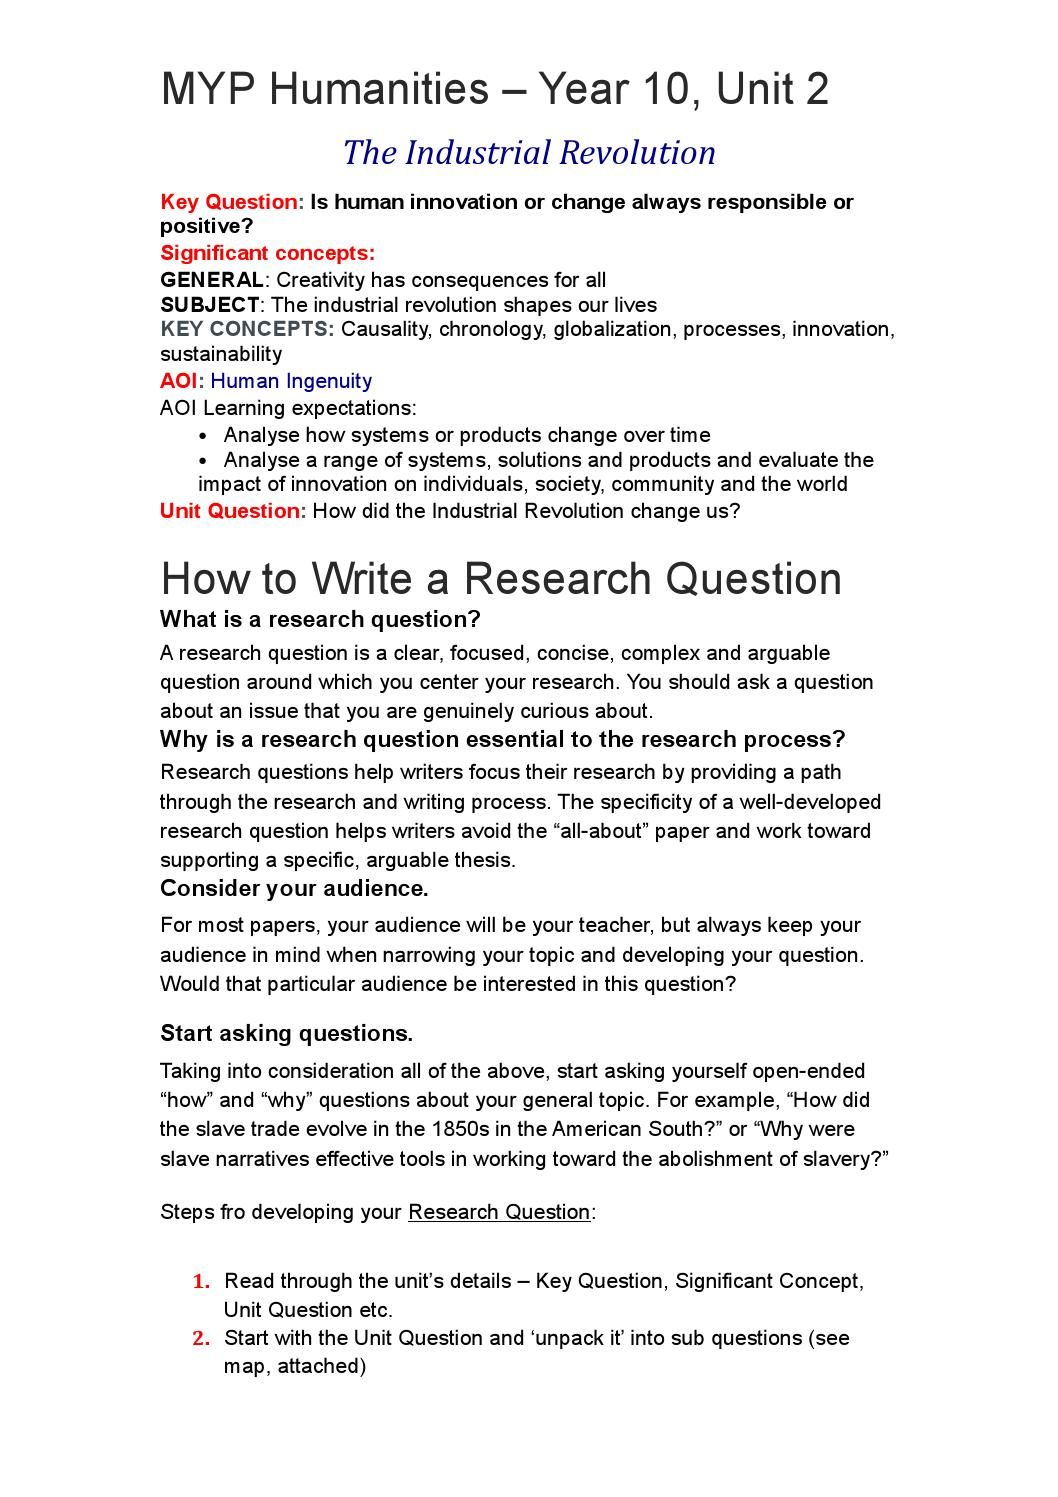 015 Page 1 Questions For Research Formidable Paper Defense Inquiry Full